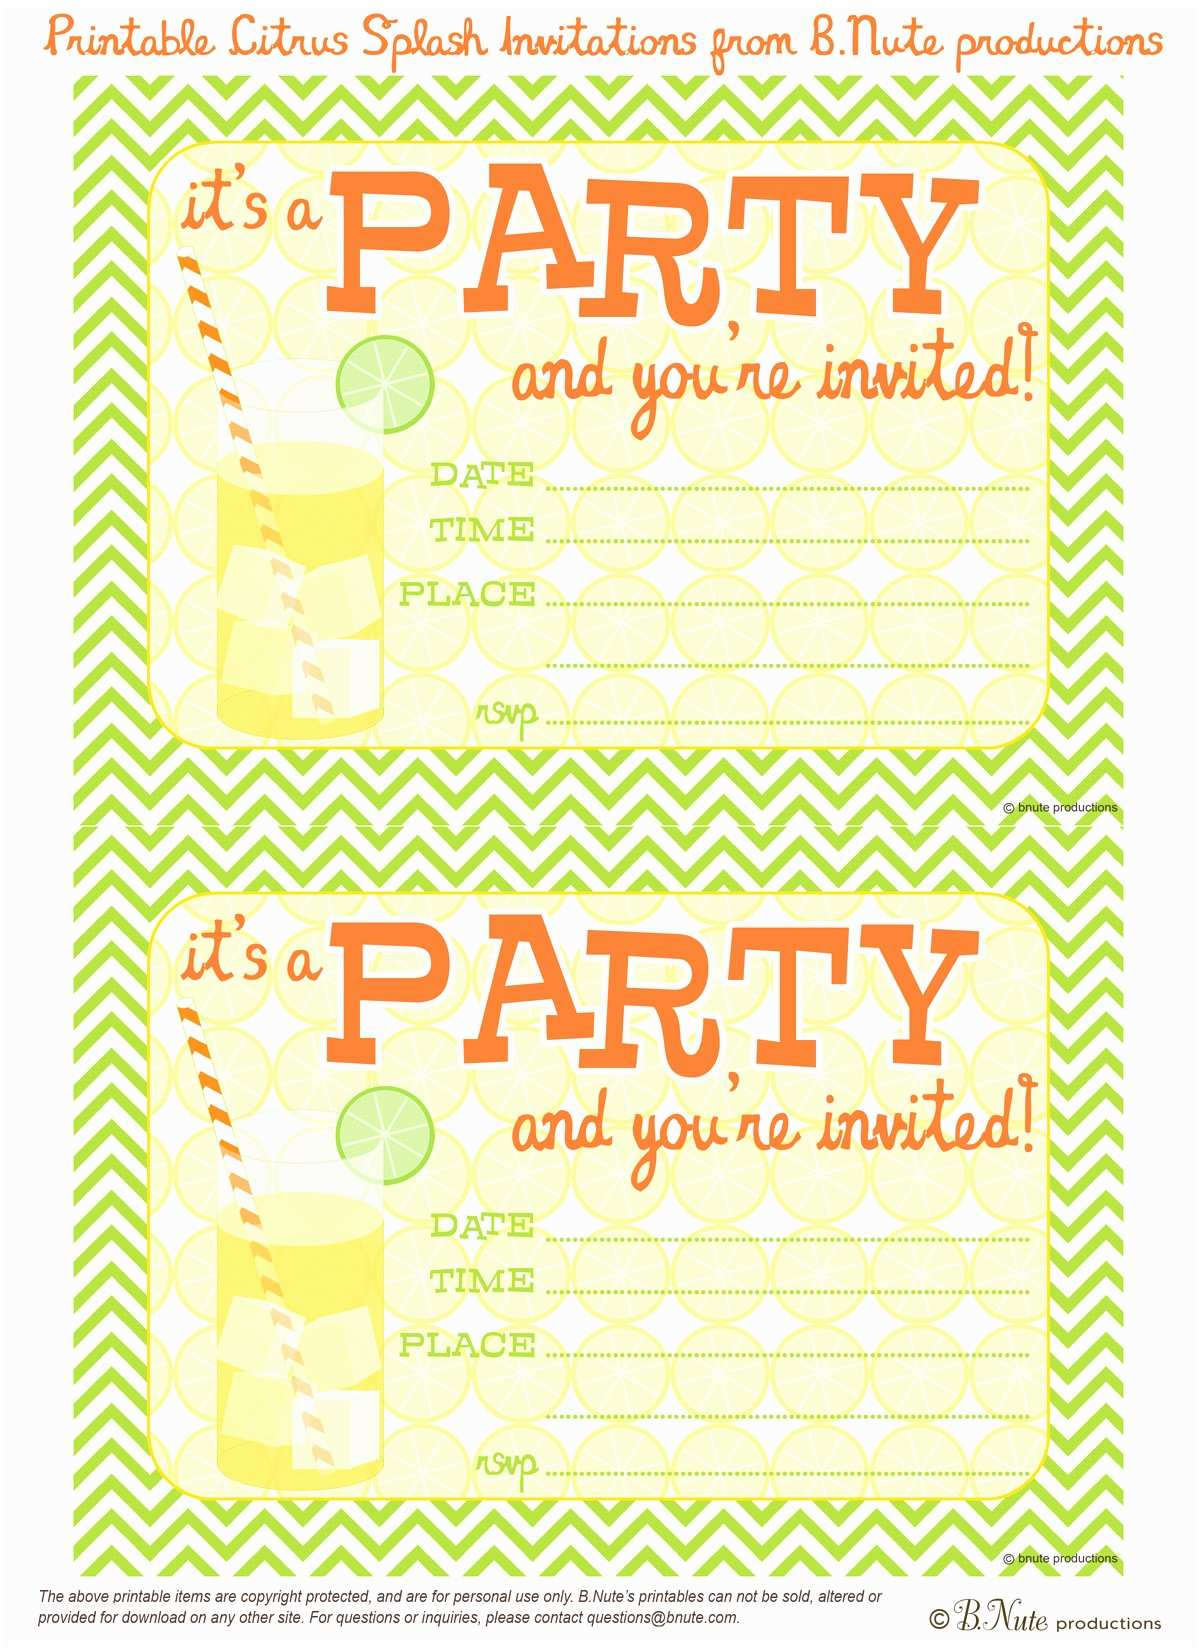 Free Printable Birthday Party Invitations Bnute Productions Free Printable Citrus Splash Invitations